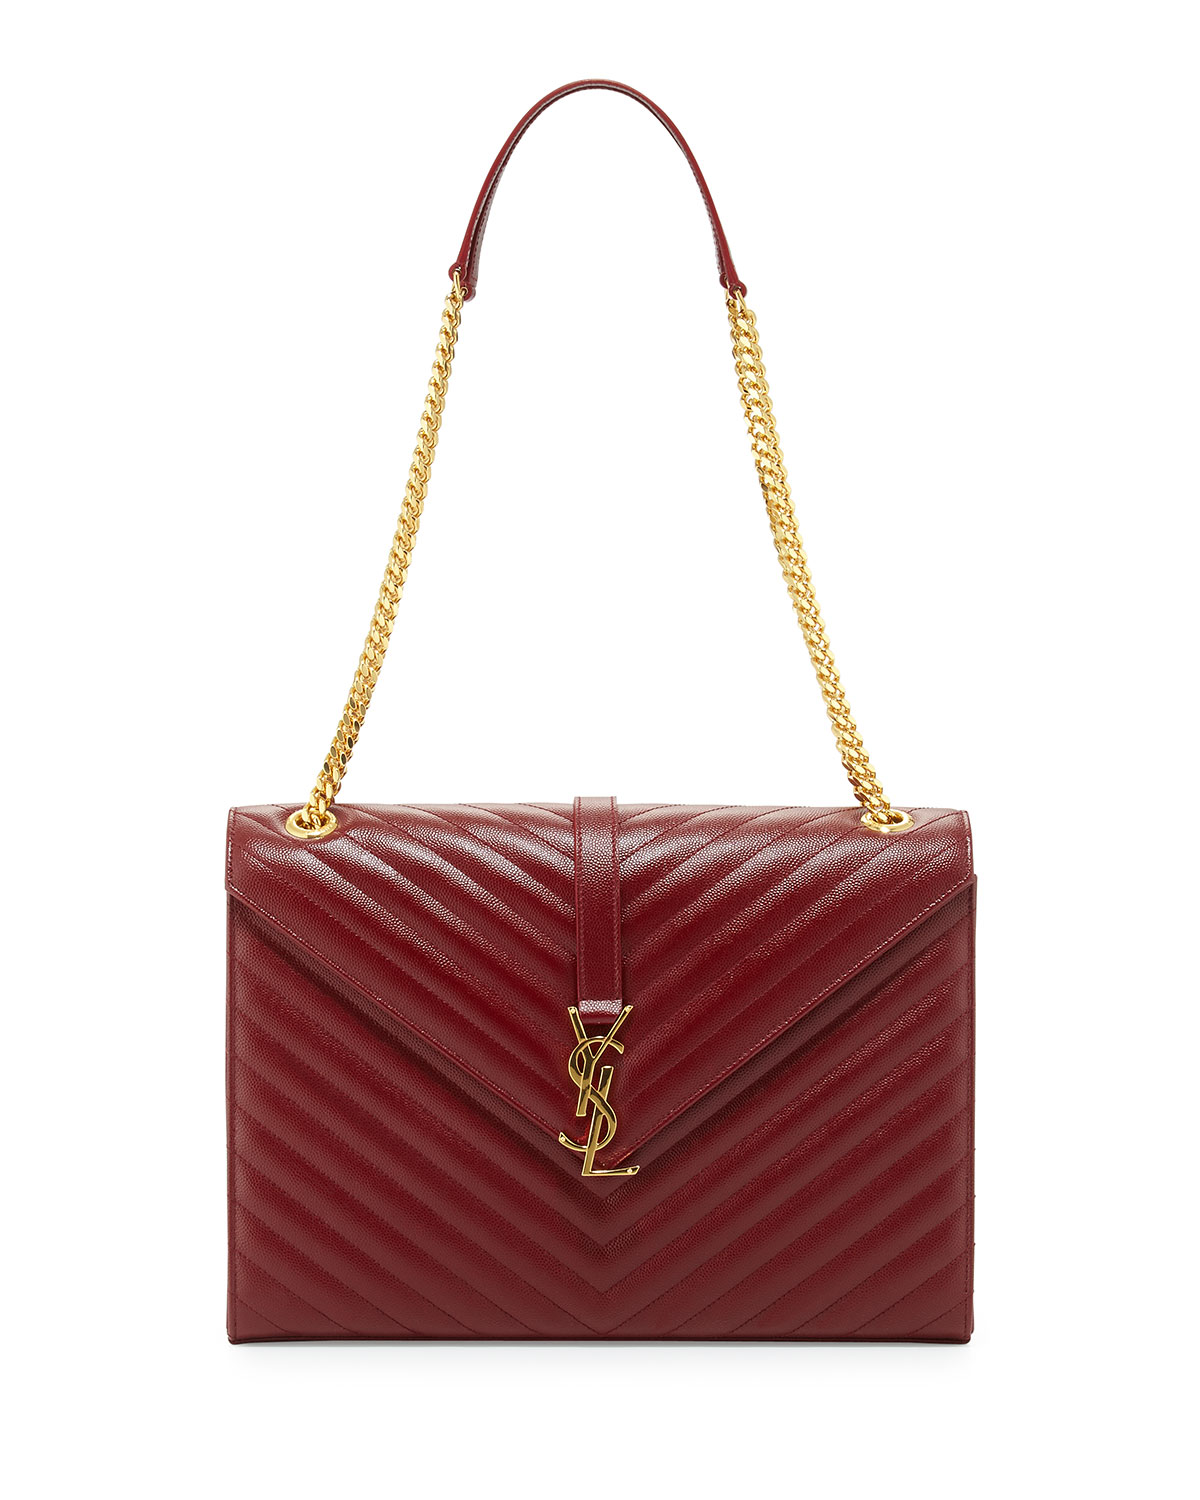 900ad5c2f07 Saint Laurent Monogram Matelasse Large Chain Shoulder Bag, Dark Red ...